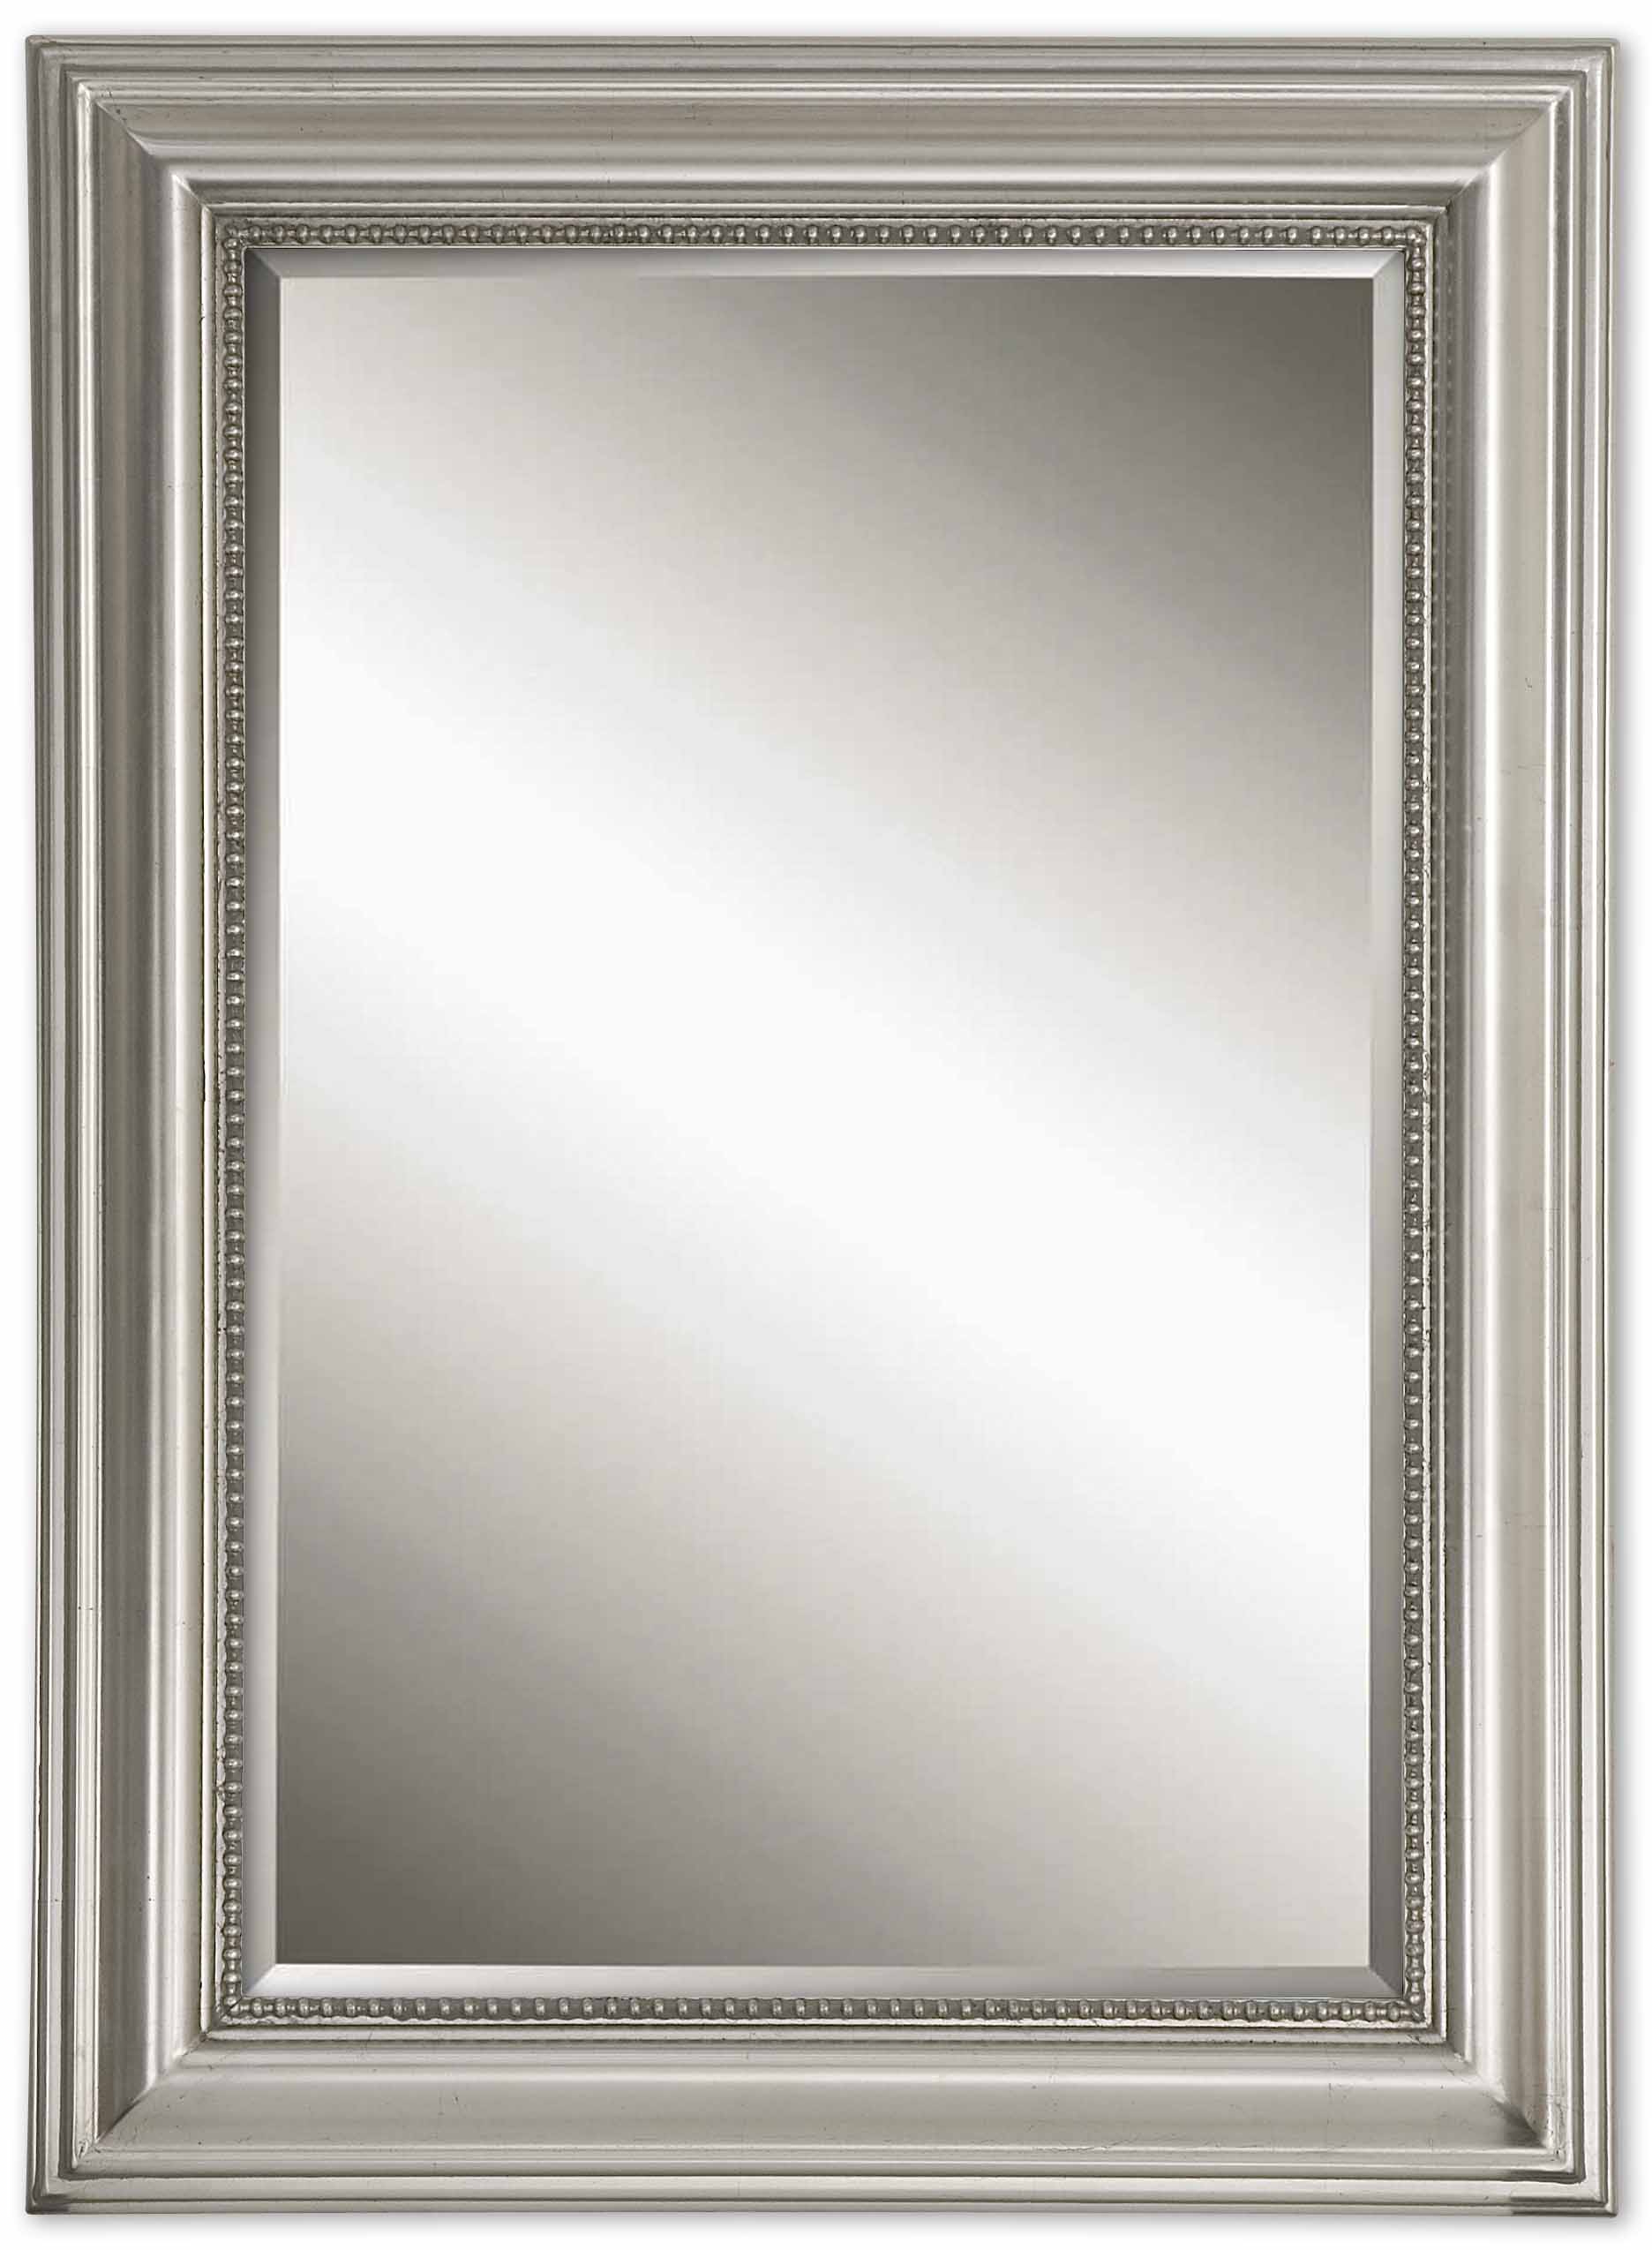 Stuart Silver Beaded Wall Mirroruttermost – 27″ X 37″ Pertaining To Best And Newest Silver Beaded Wall Mirrors (View 17 of 20)